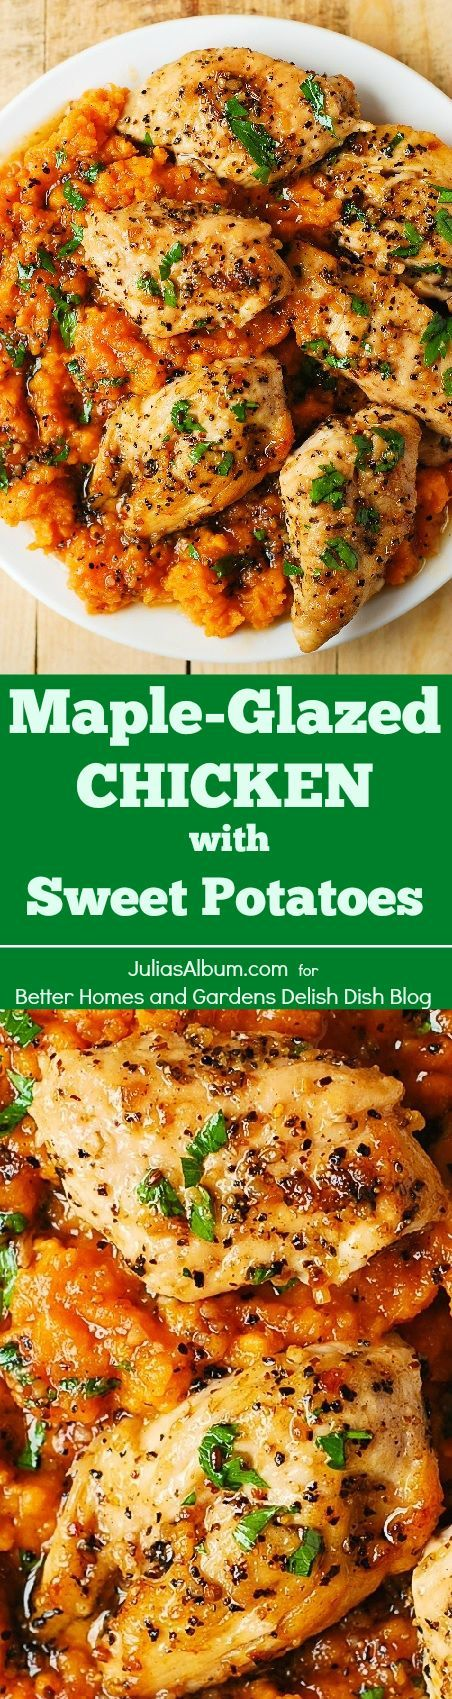 Maple-Glazed Chicken with Sweet Potatoes - SO good,lots of protein, fiber, and it's gluten-free!